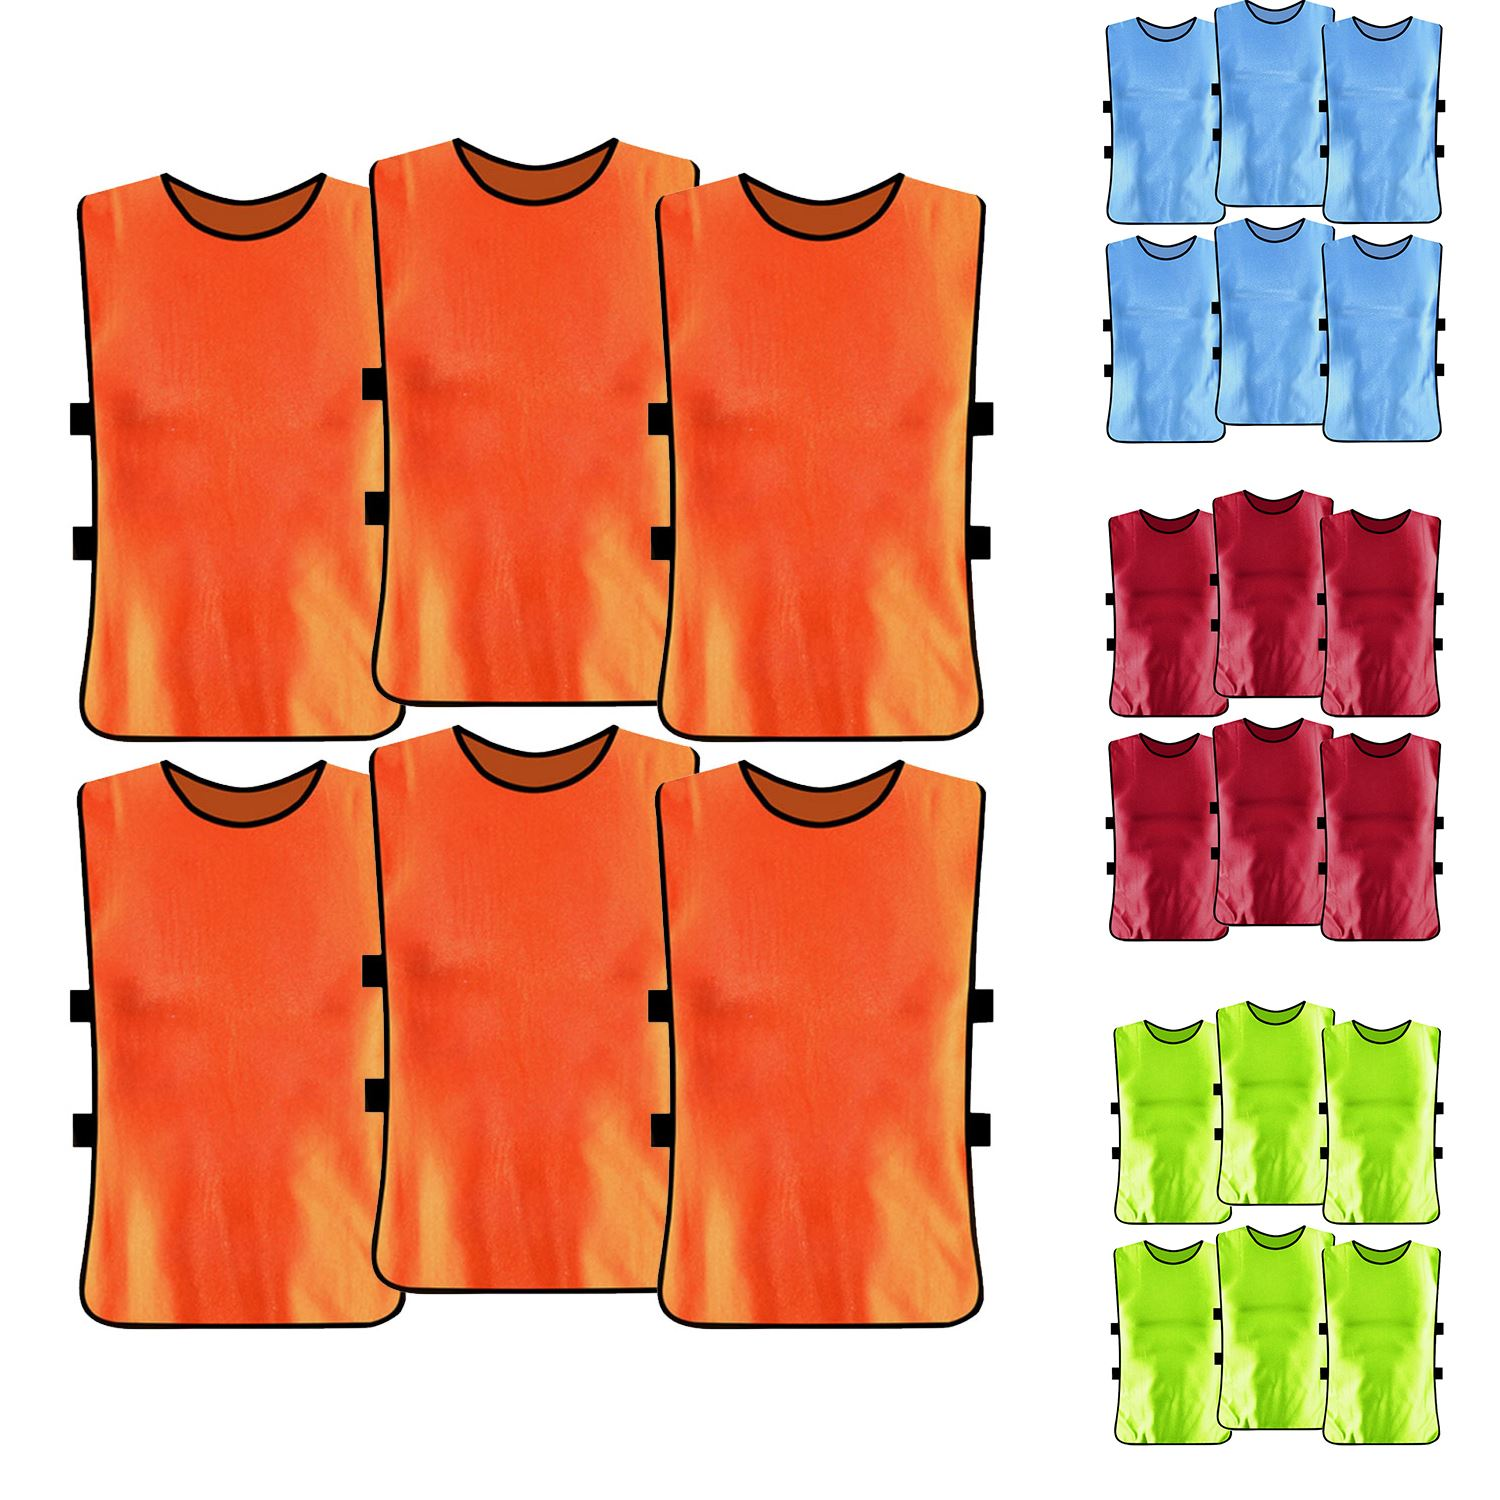 6 PCS Adults Kids Soccer Pinnies Quick Drying Football Jerseys Vest Scrimmage Practice Sports Vest Breathable Team Training Bibs